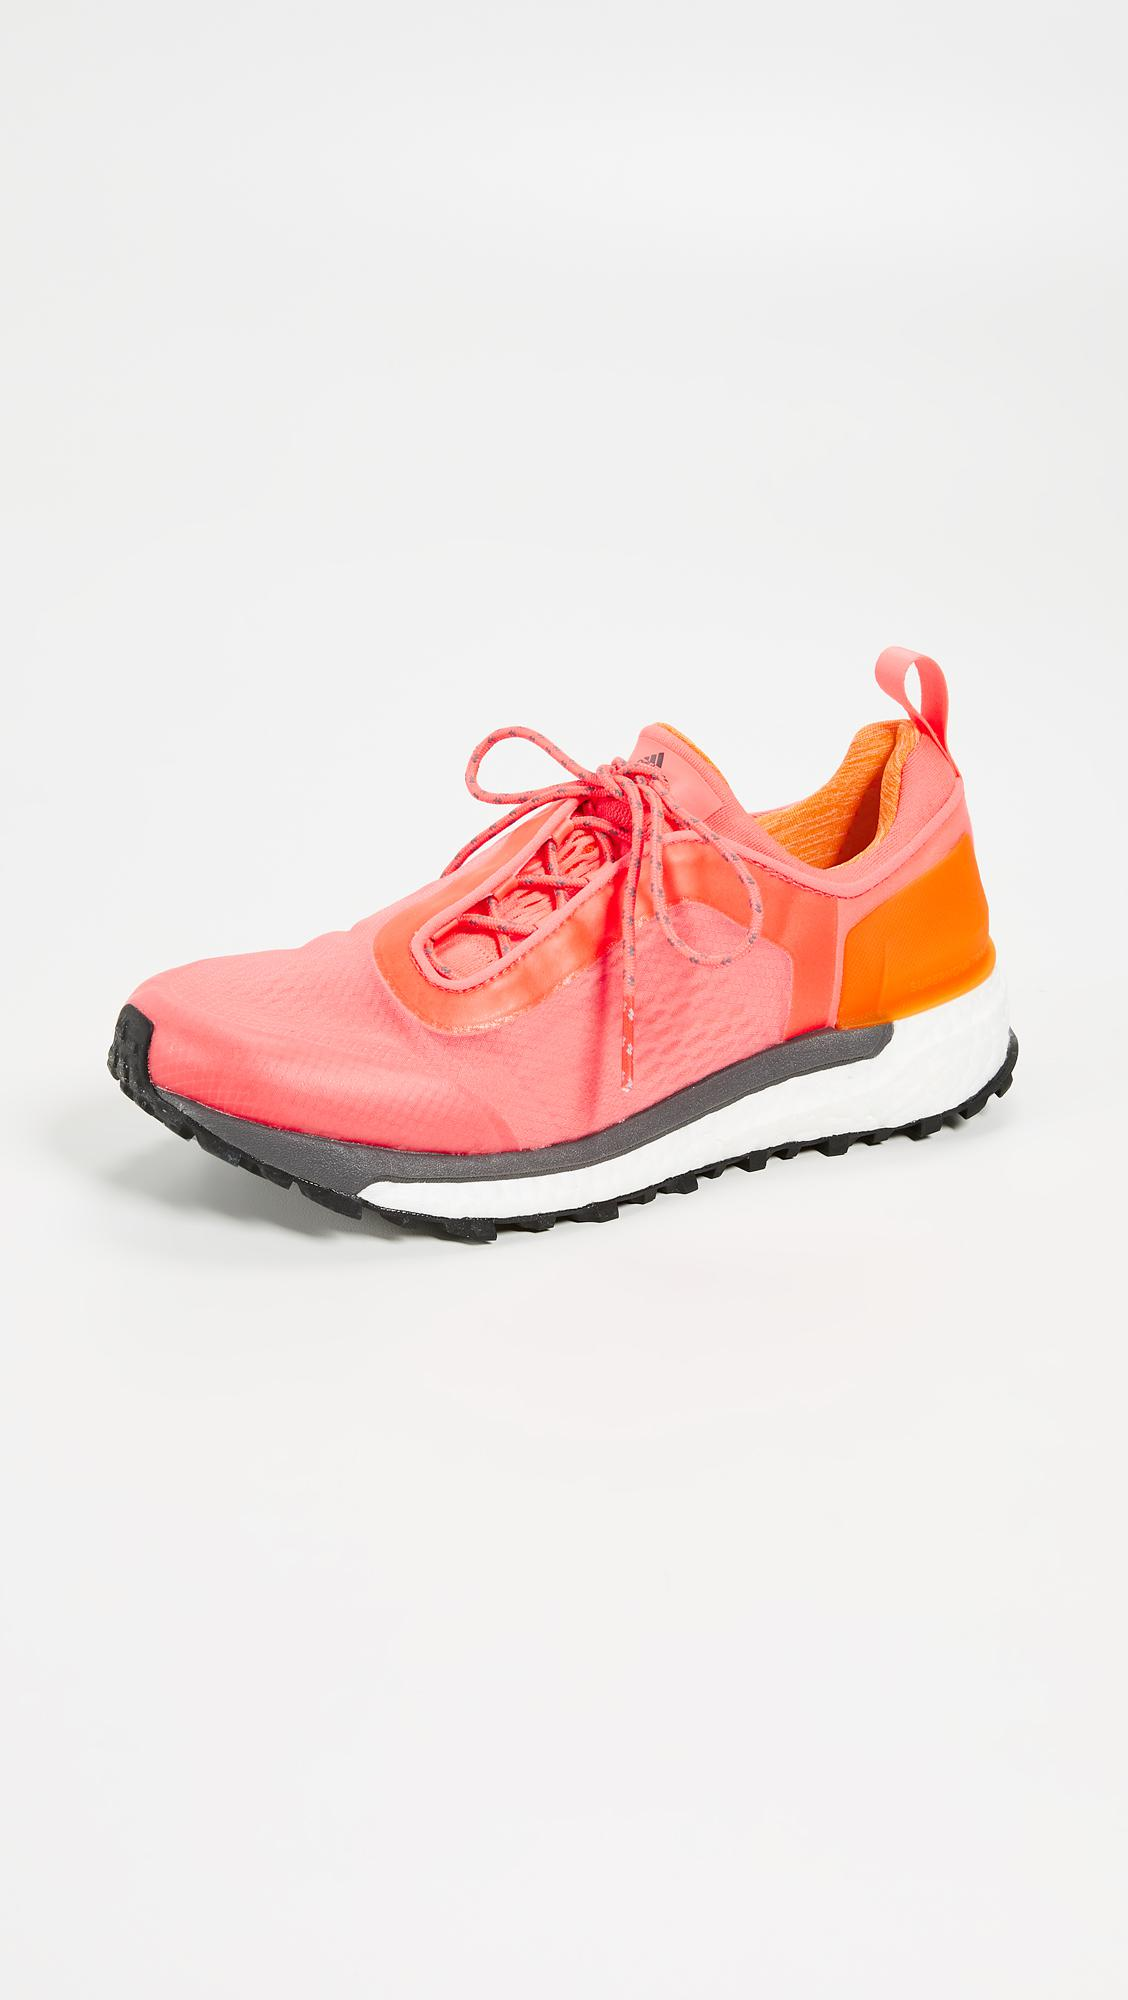 c1763ce26 adidas By Stella McCartney. Women s Supernova Trail Trainers